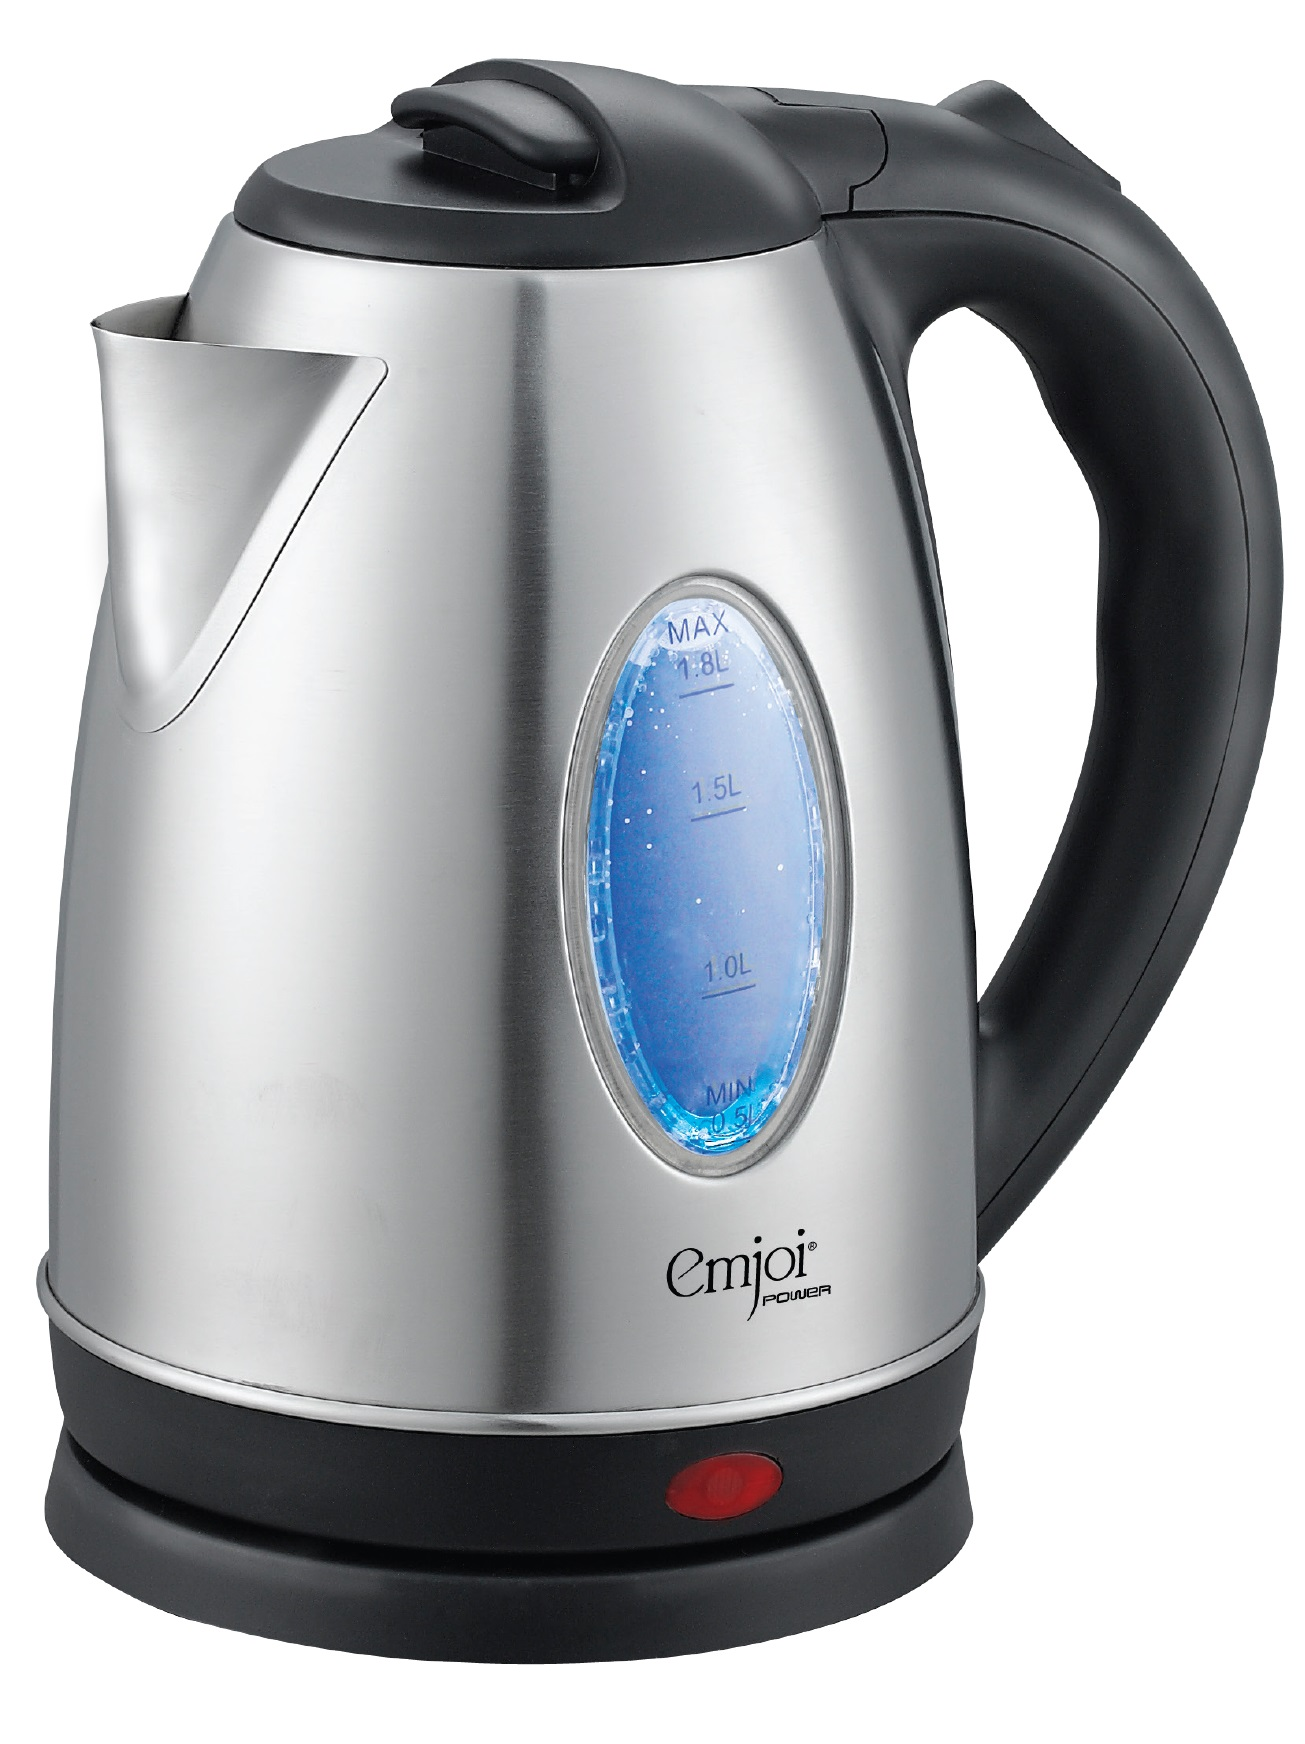 Emjoi 1.8L, 2200W Electric Kettle, UEK-338